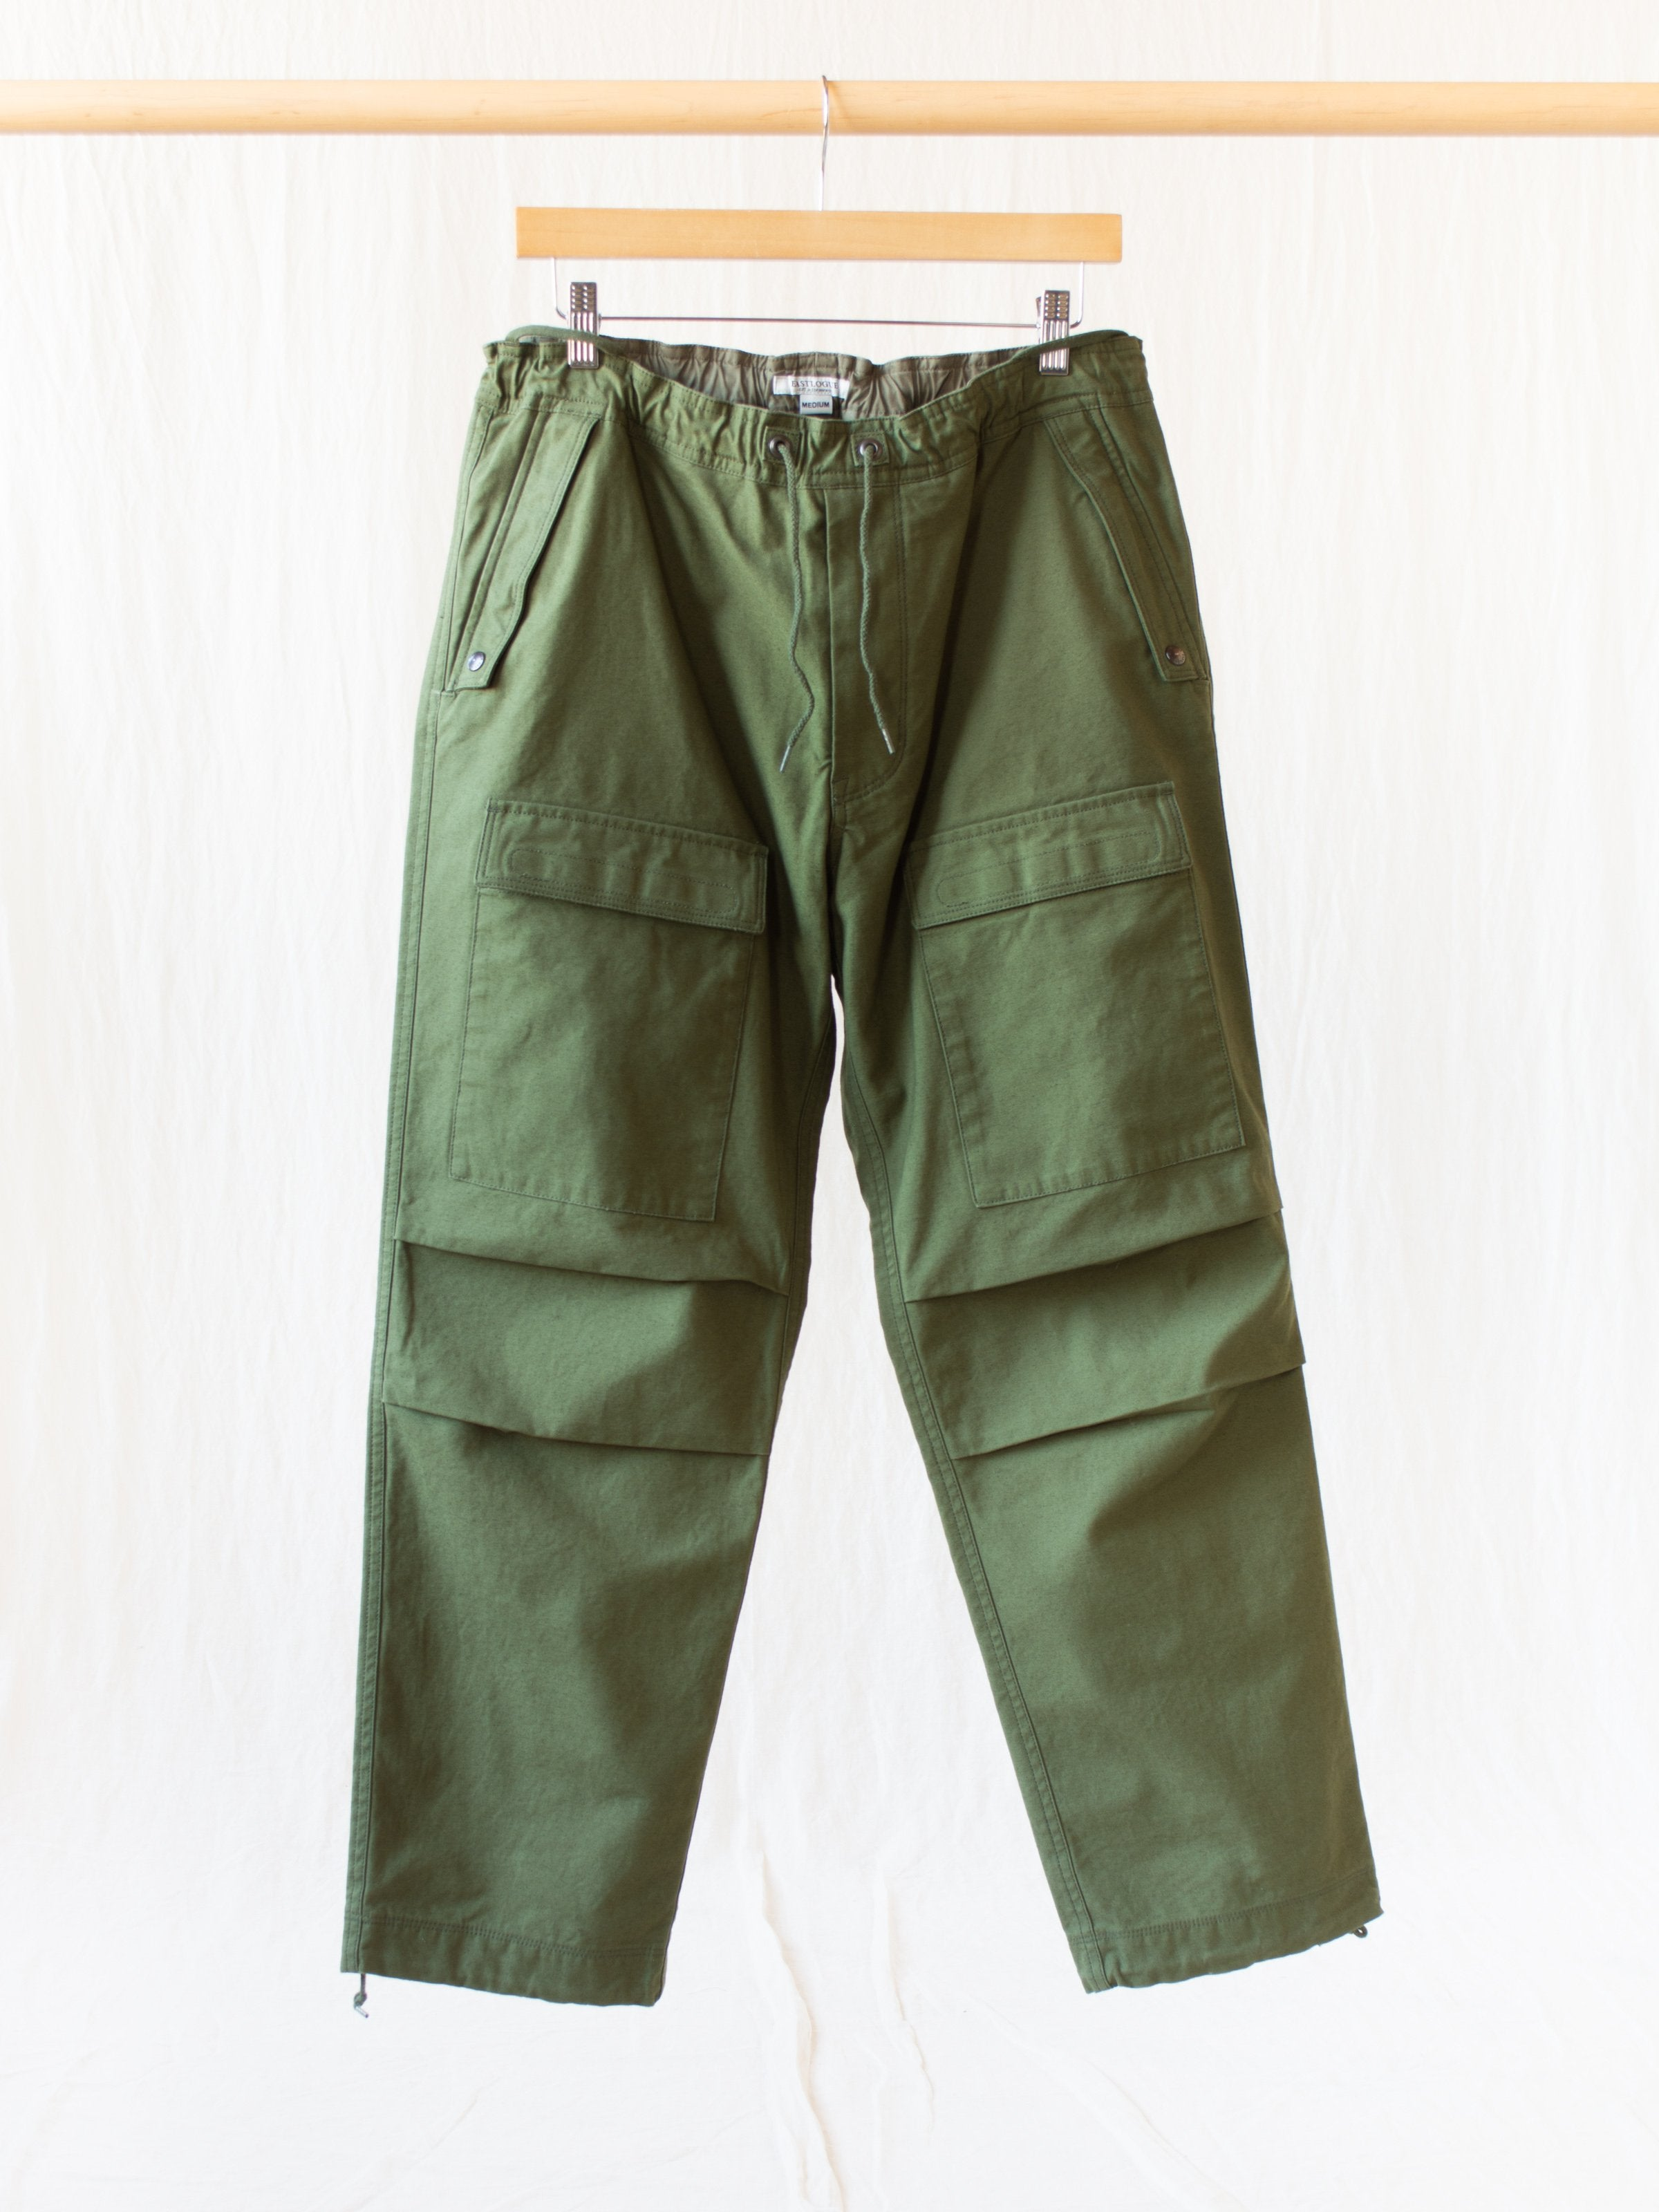 Namu Shop - Eastlogue CBR Pants - Olive